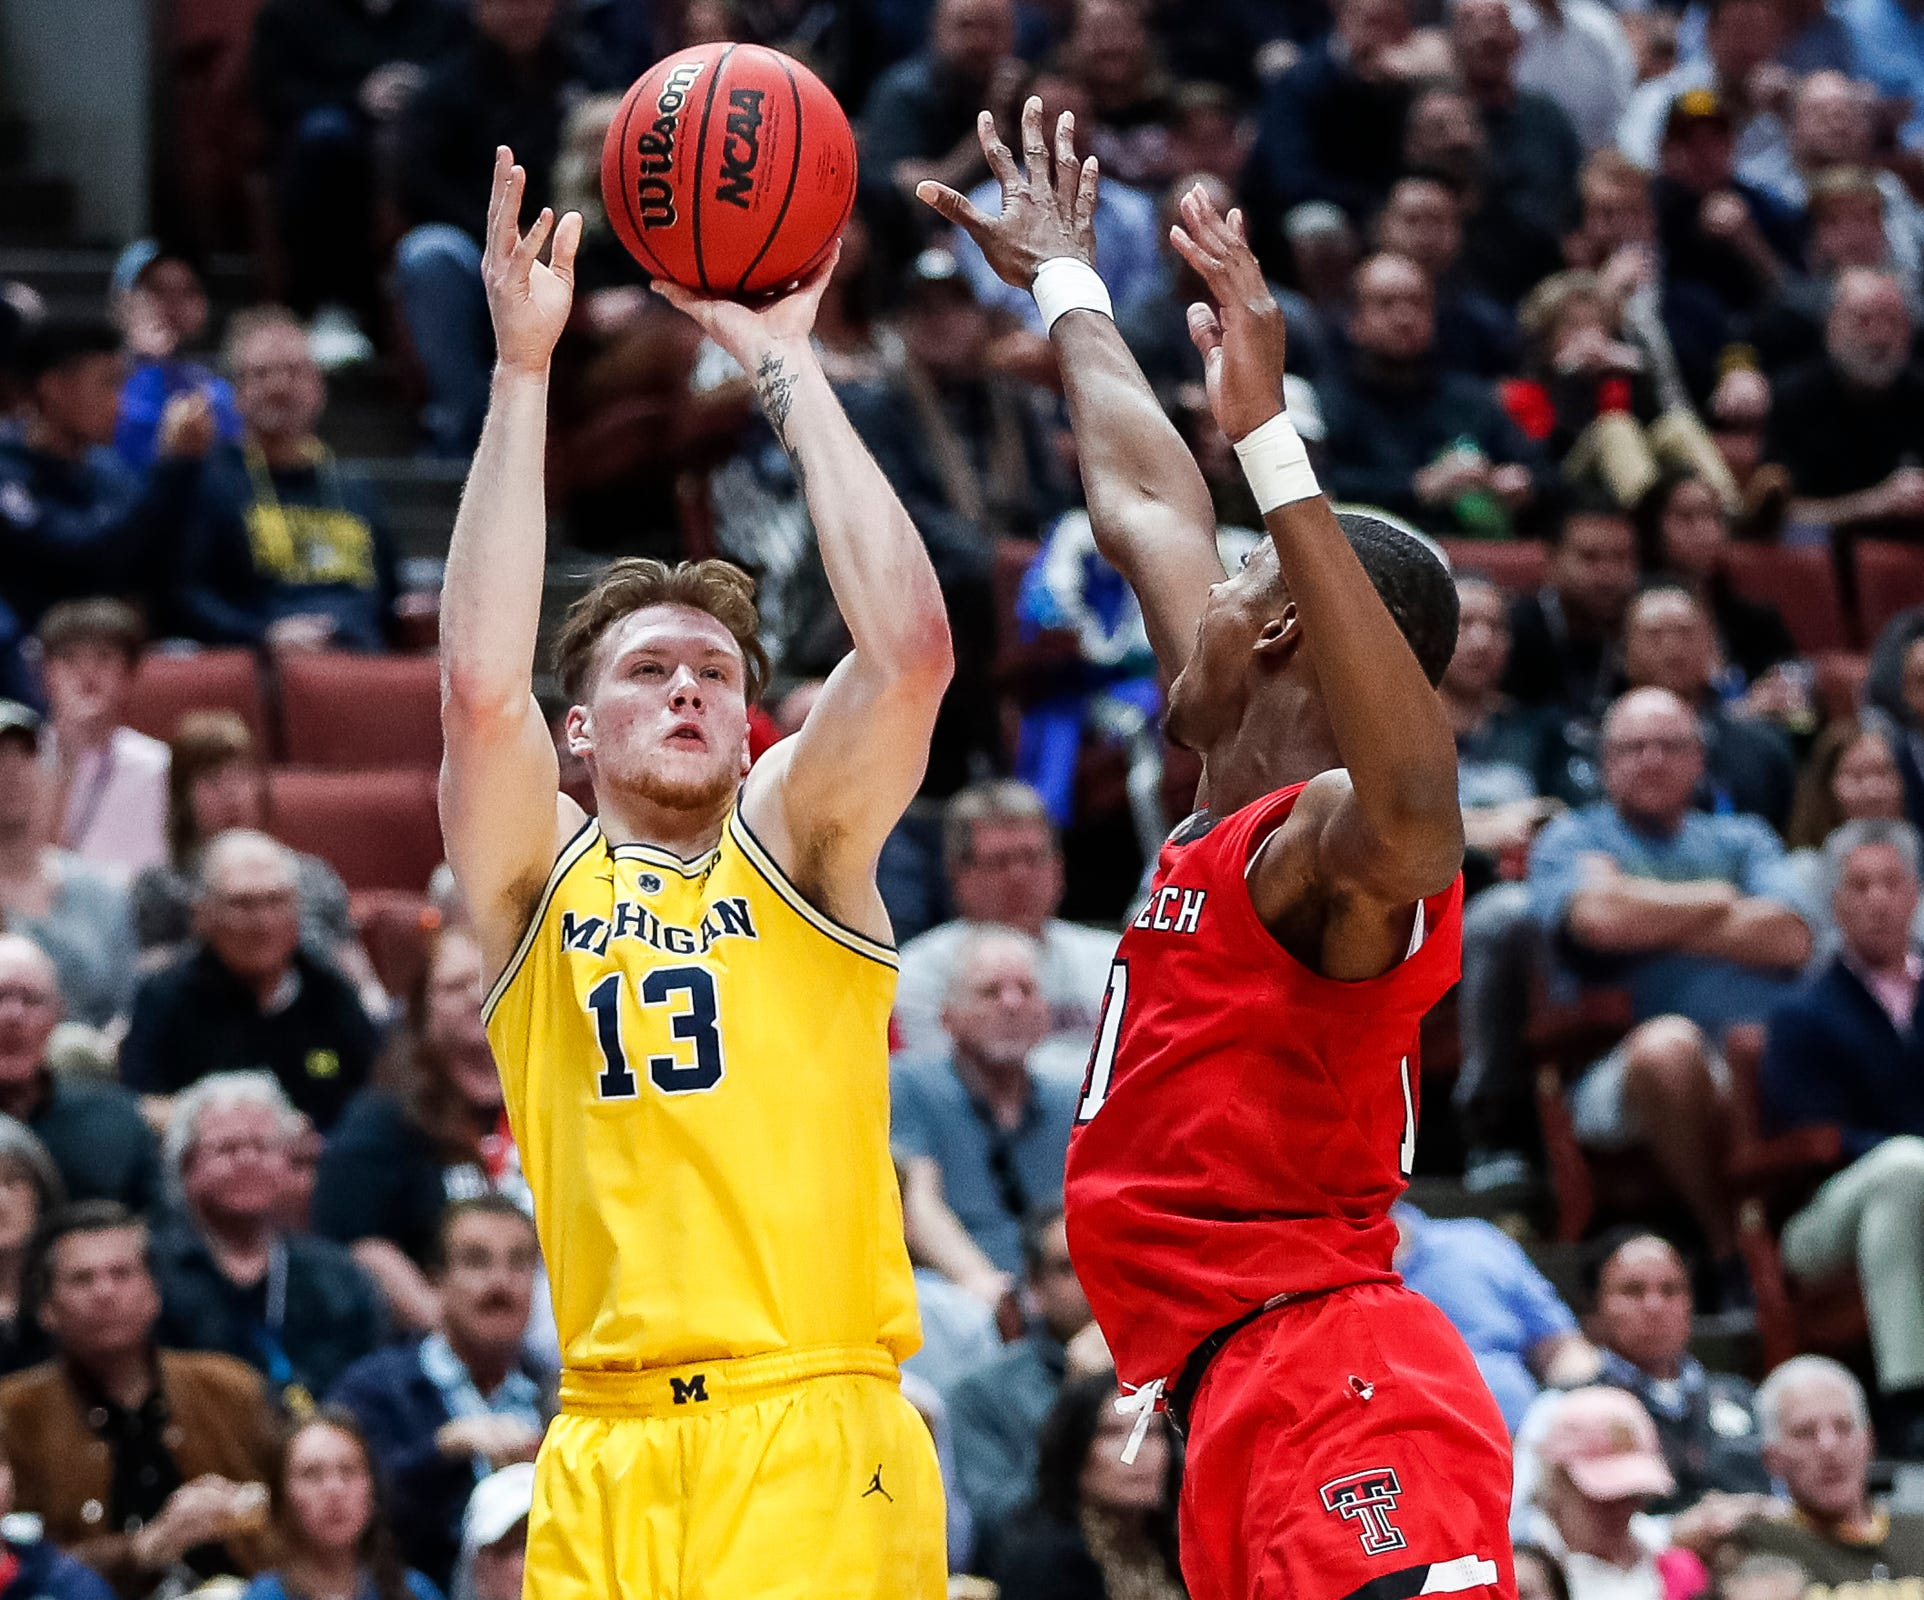 Michigan forward Ignas Brazdeikis (13) attempts for a 3-point basket against Texas Tech guard Kyler Edwards (0) during the first half of the Sweet 16 game at Honda Center in Anaheim, Calif., Thursday, March 28, 2019.